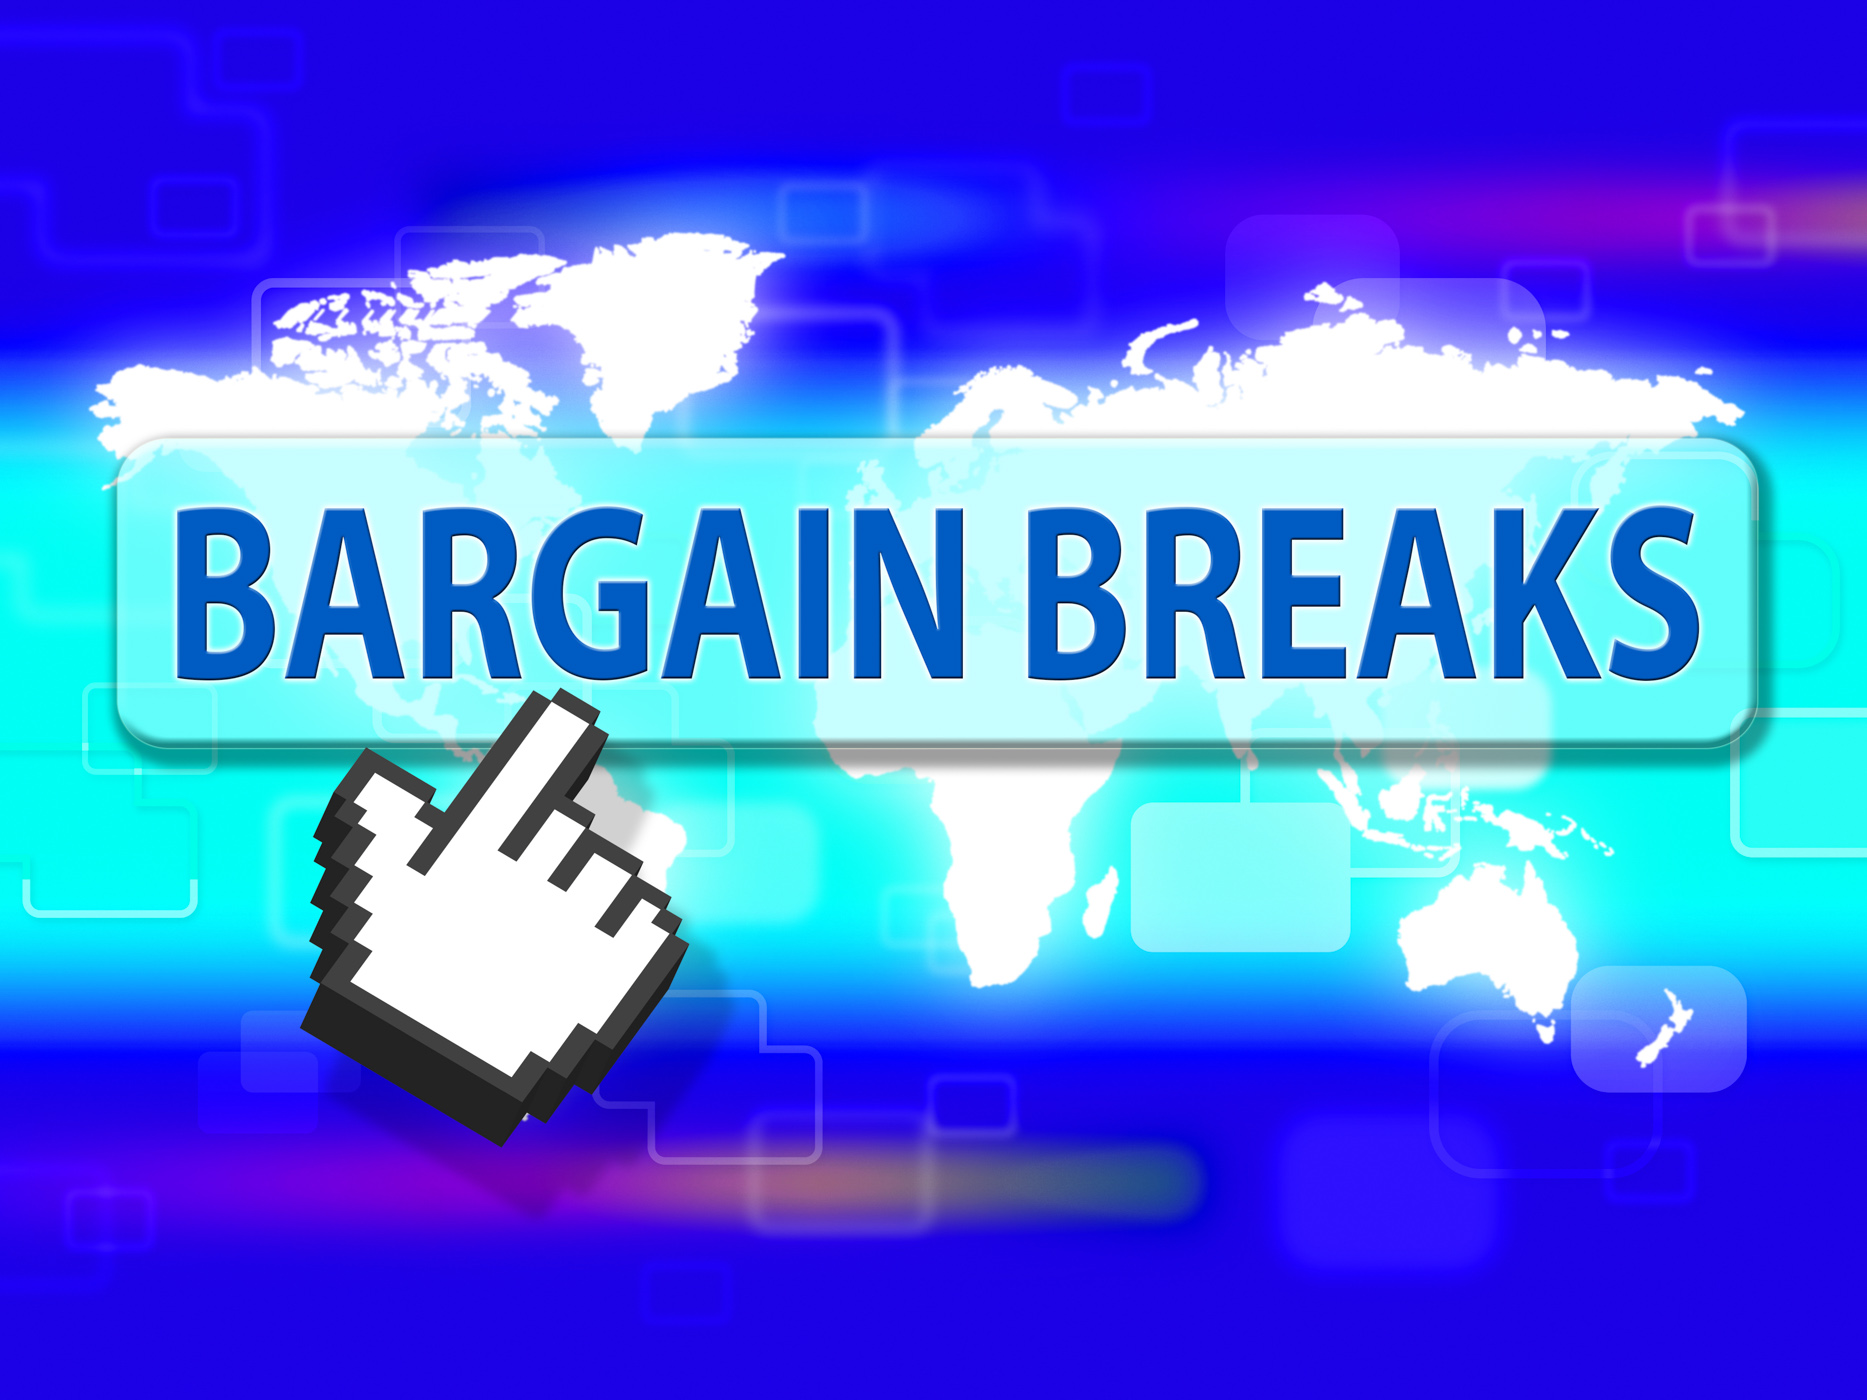 Bargain Breaks Indicates Short Vacation And Sales, Bargain, Promotion, Vacationing, Vacational, HQ Photo